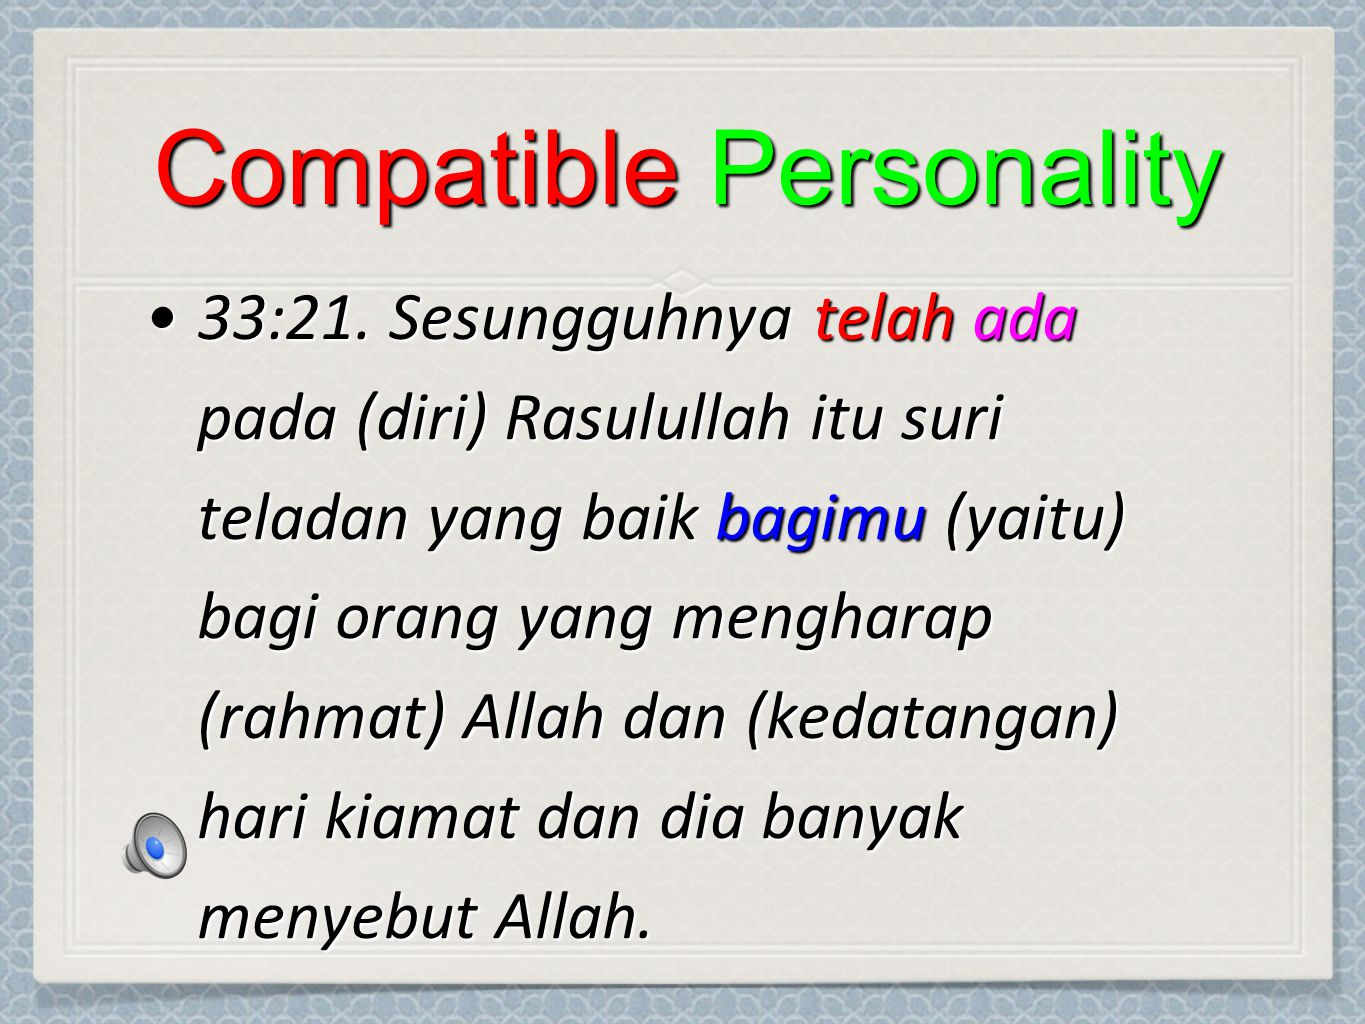 Compatible Personality 33:21.